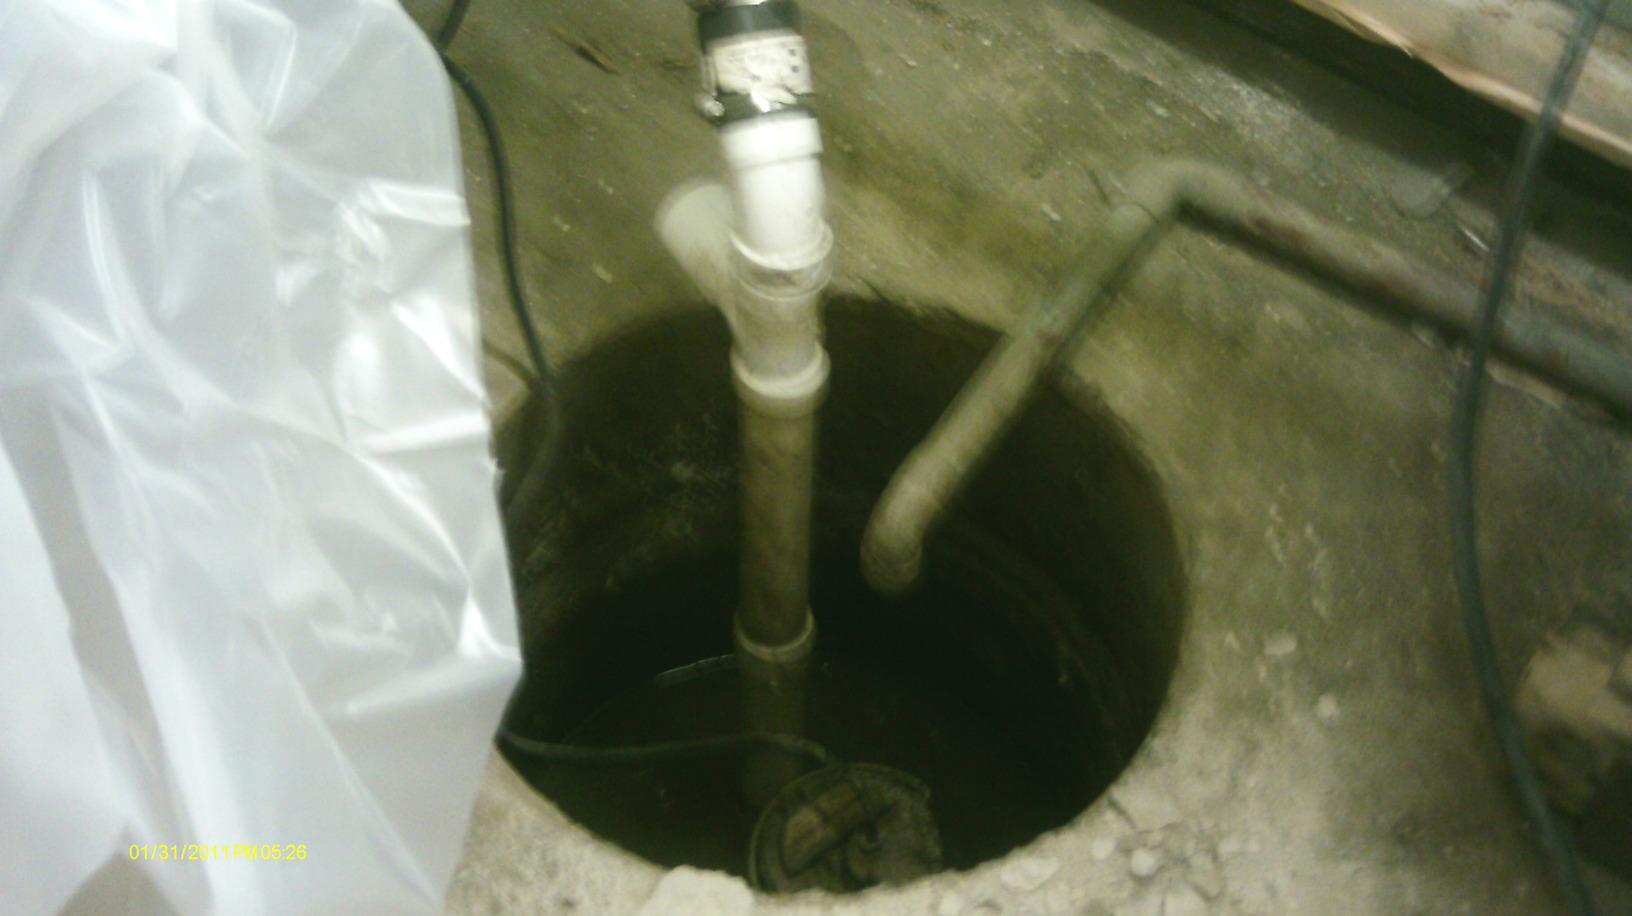 The old sump pump is inefficient and allows water vapor to rise into the basement, adding t the general dampness of the space.